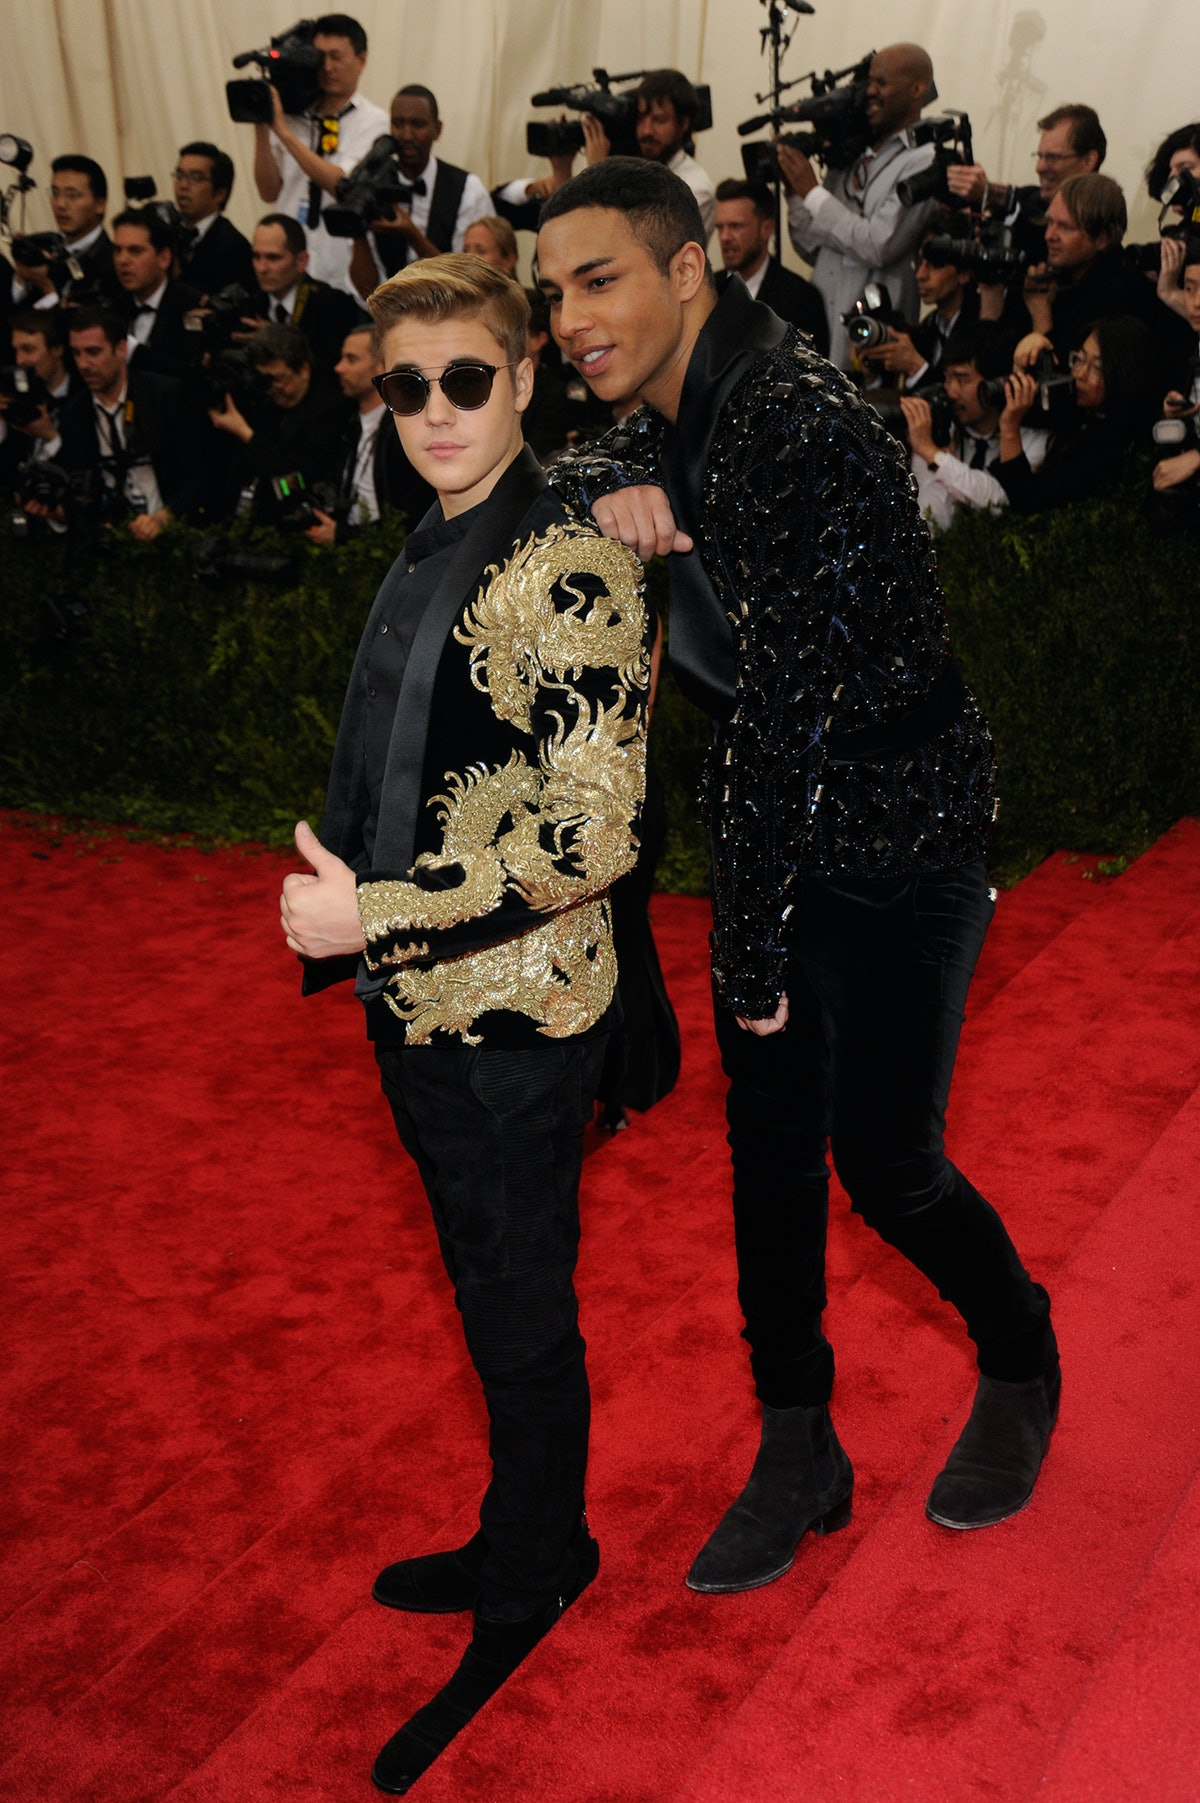 Justin Bieber in Balmain with Olivier Rousteing